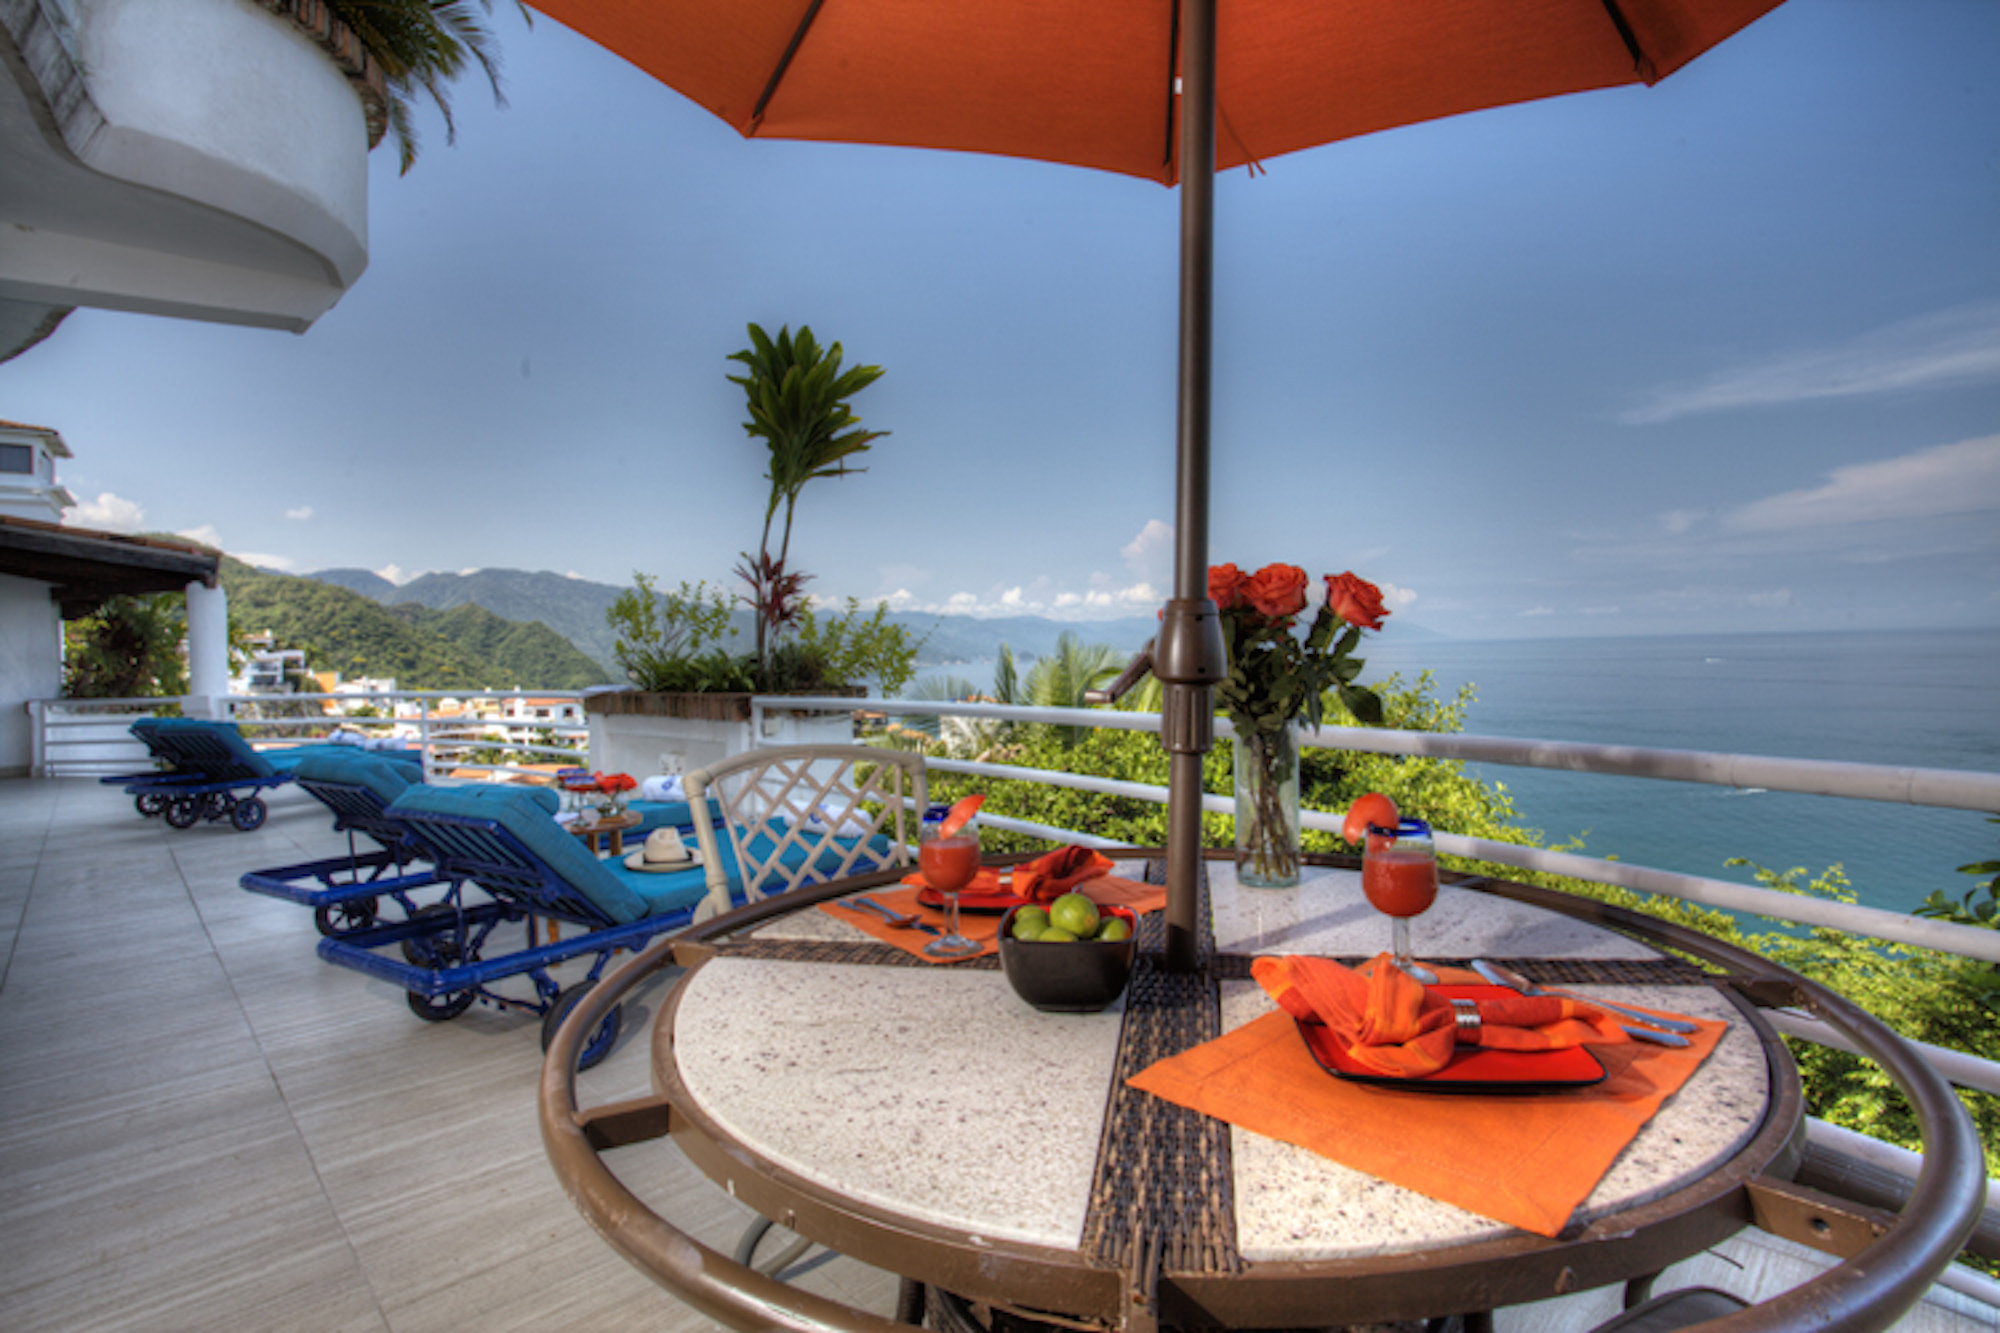 get a vallarta shores special package